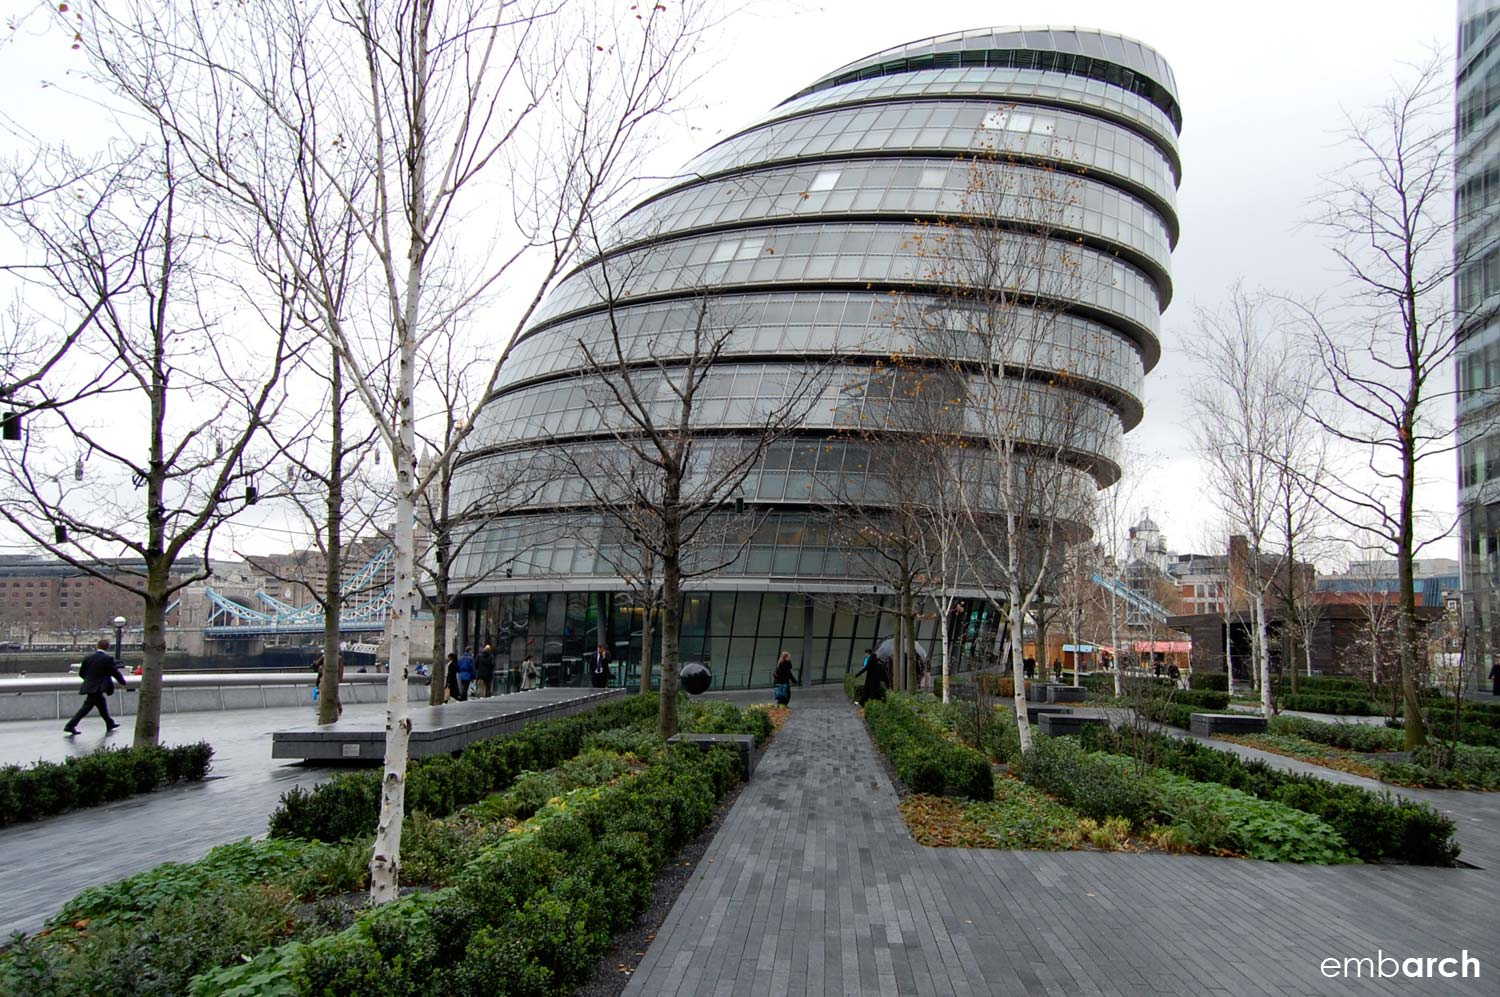 London City Hall - view of exterior